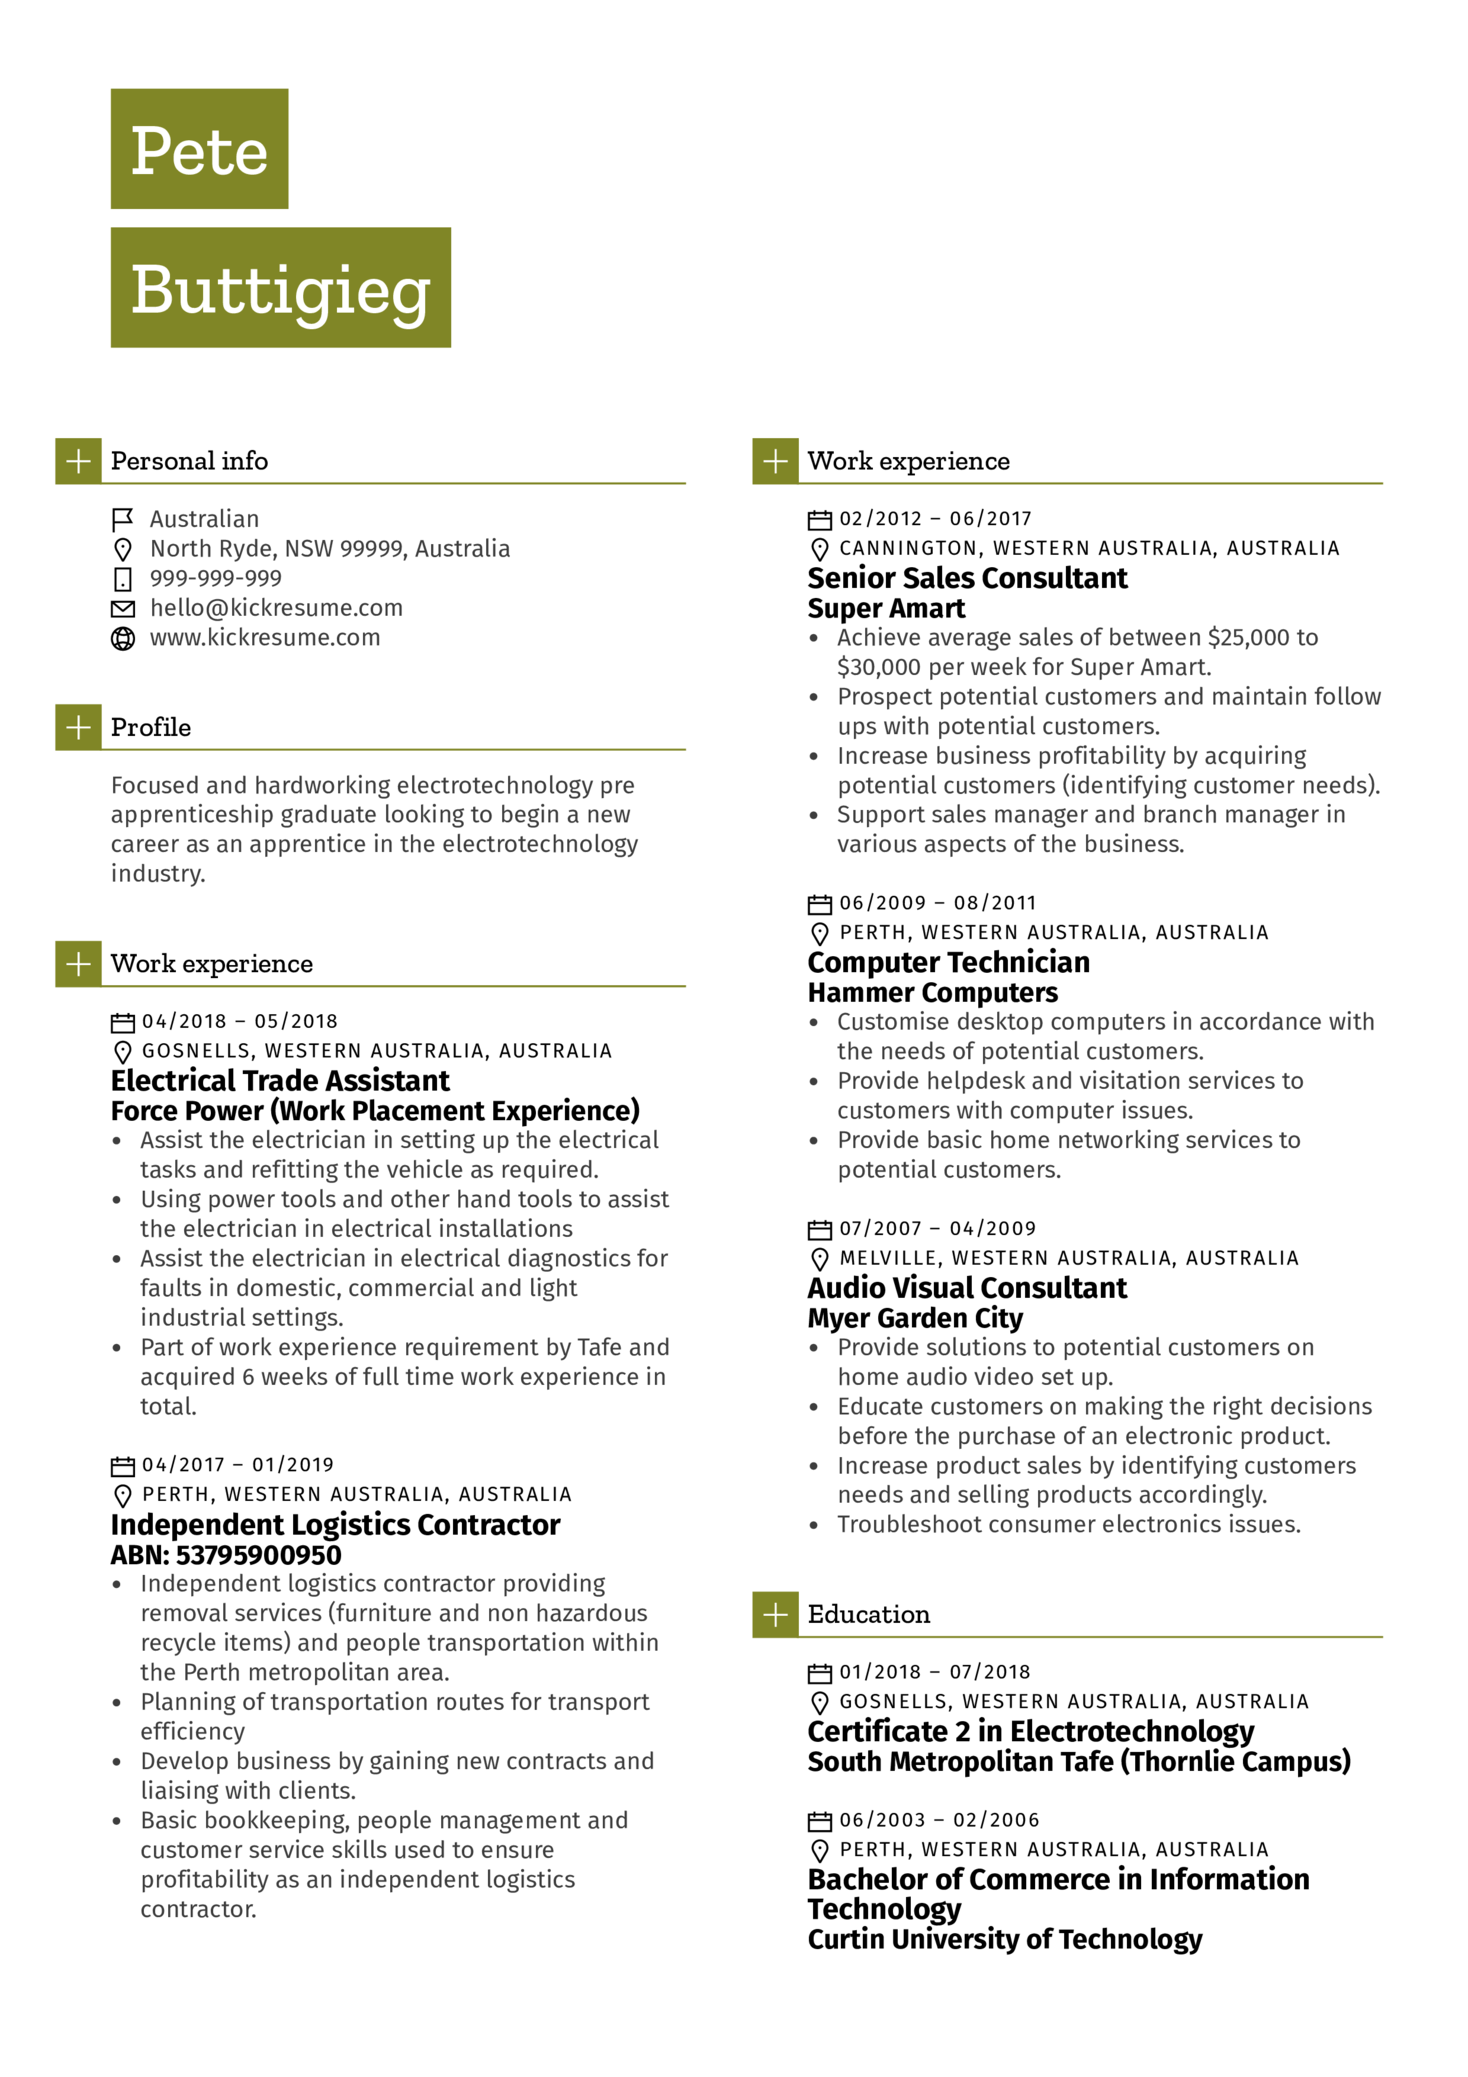 Electrical Assistant CV Example (Part 1)